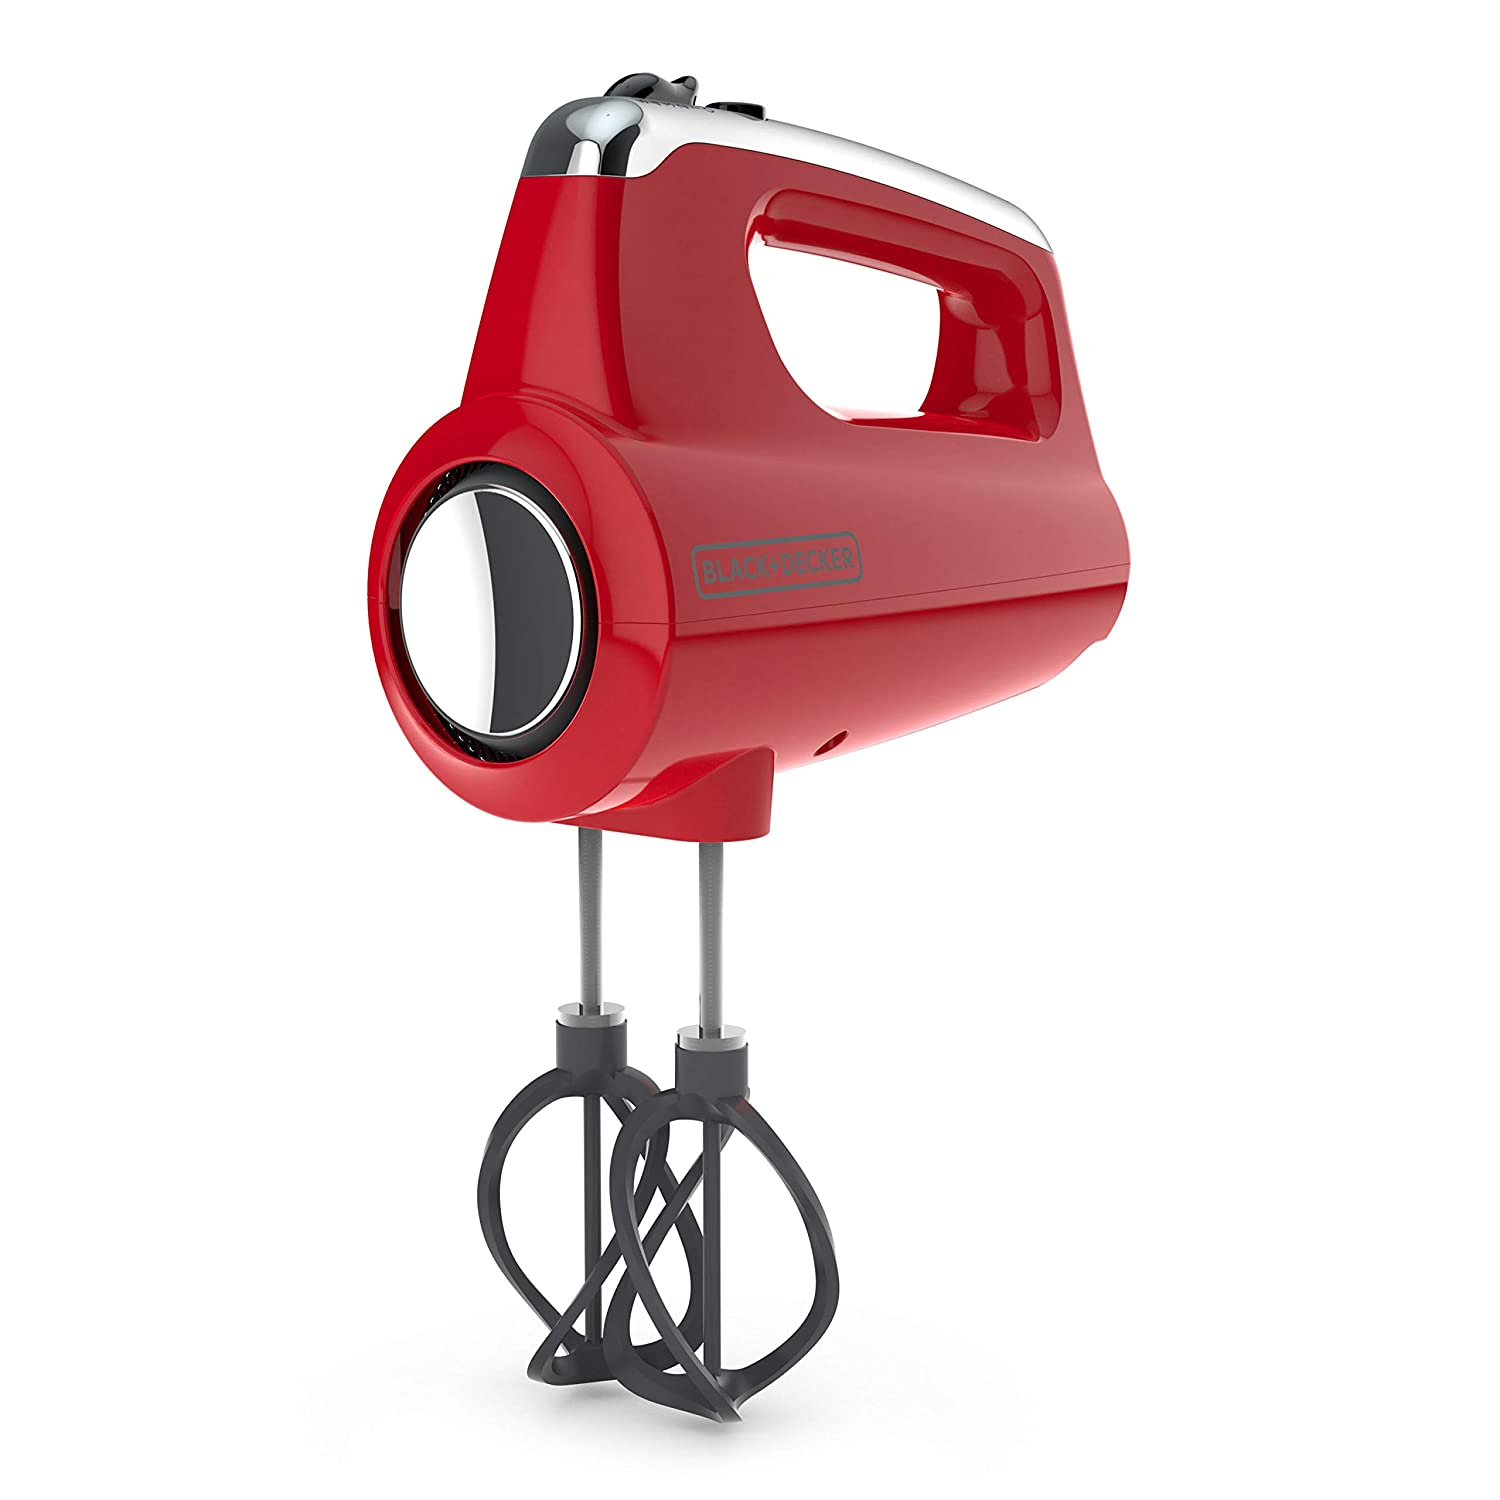 BLACK+DECKER MX600R Helix Performance Premium 5-Speed Hand Mixer Red